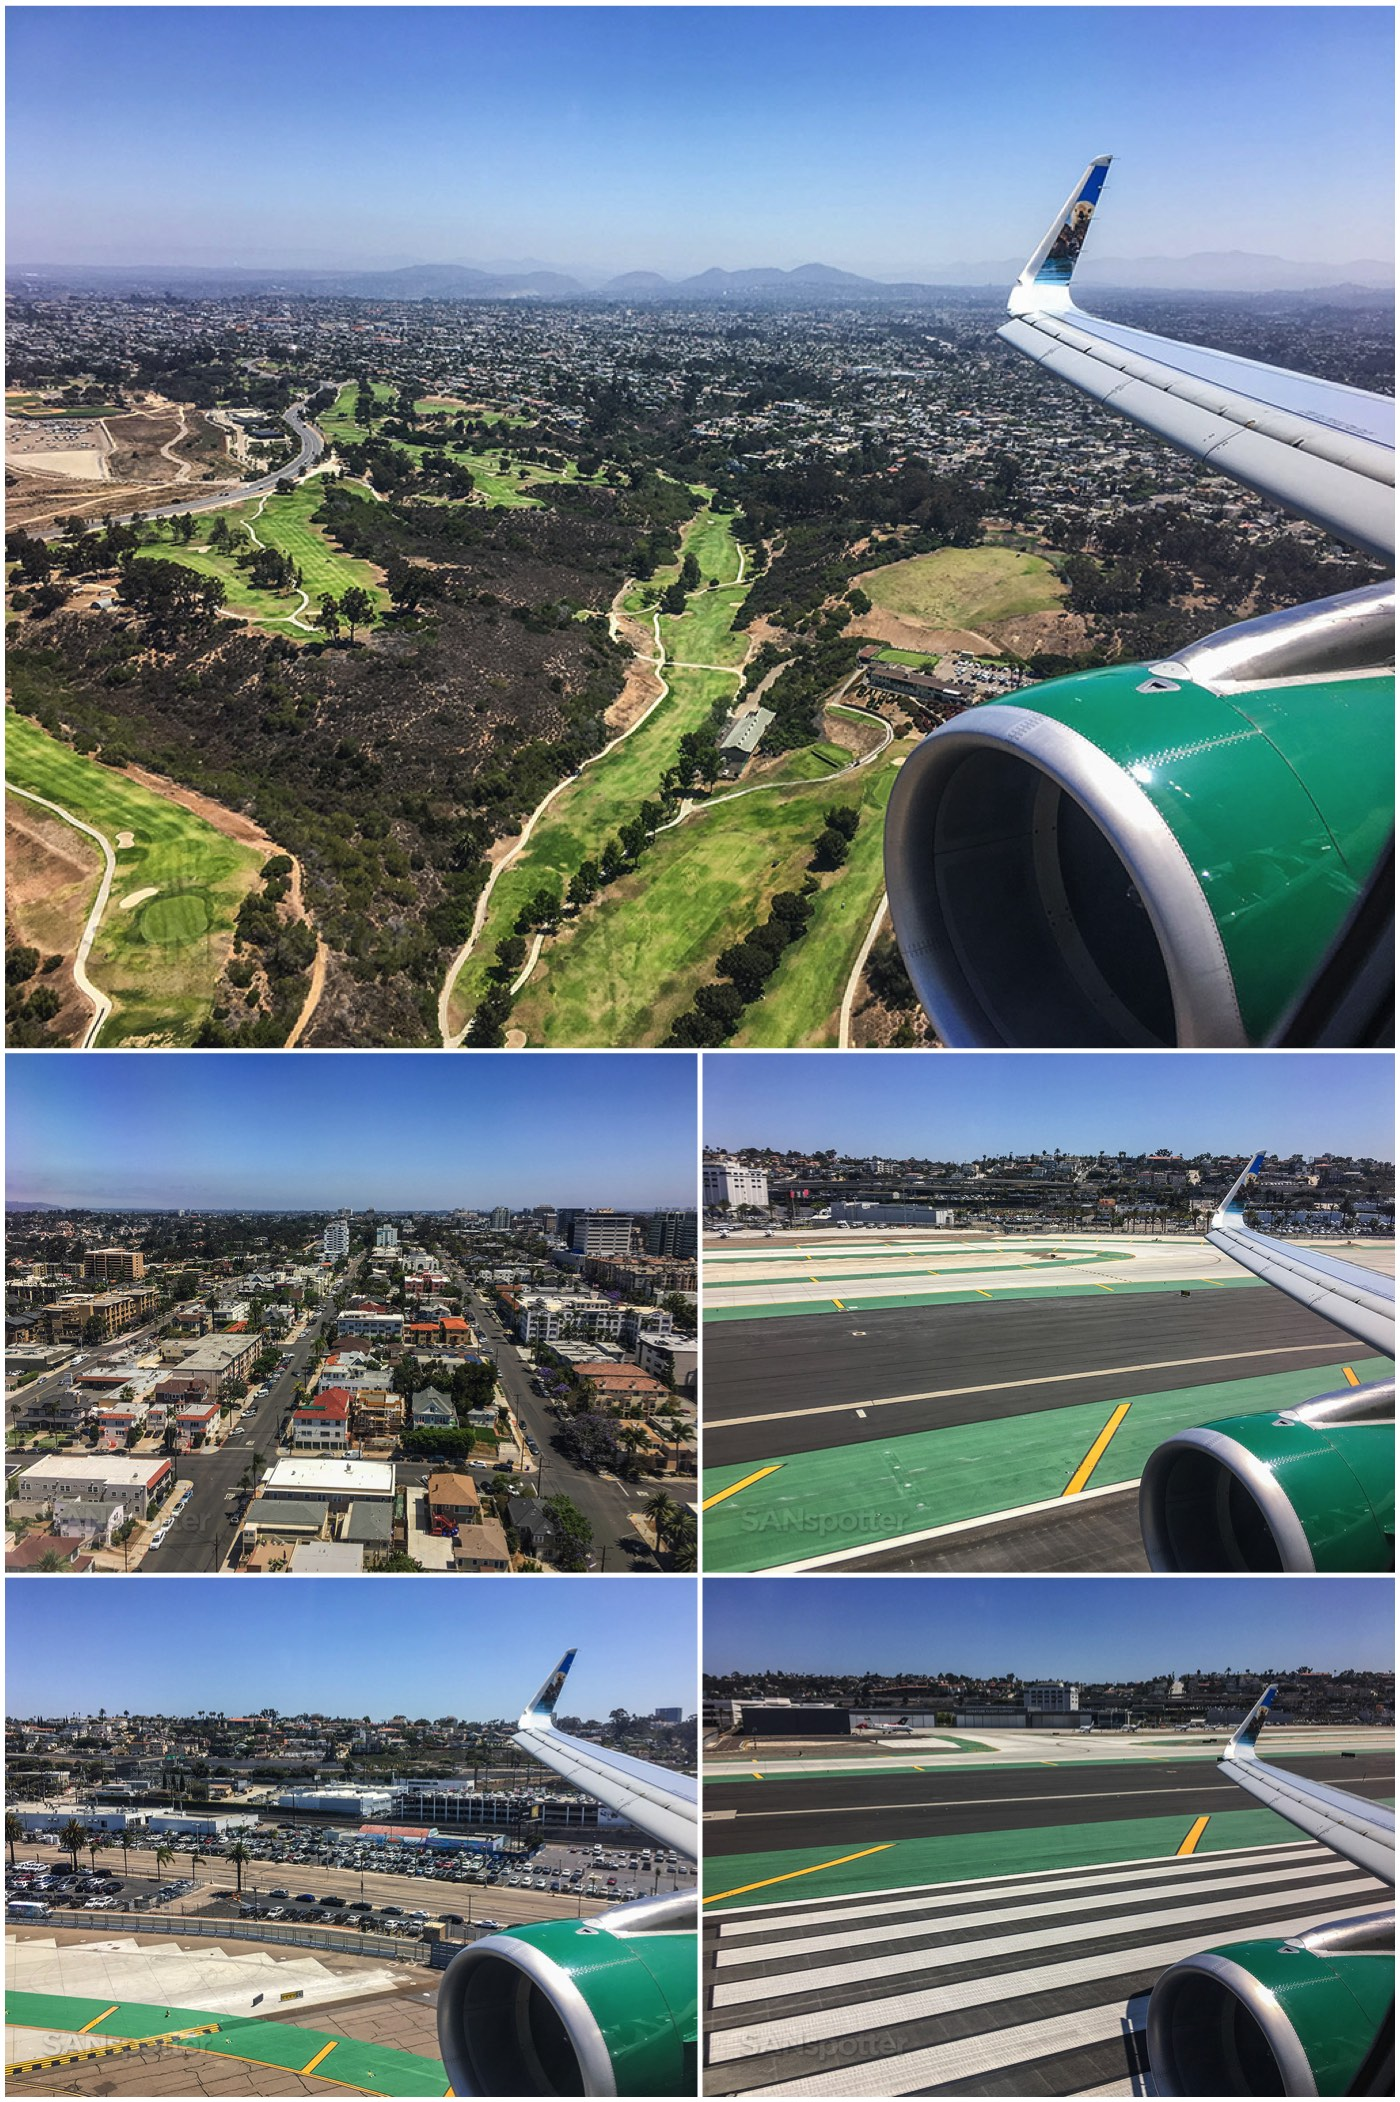 Approach into San Diego airport Frontier Airlines